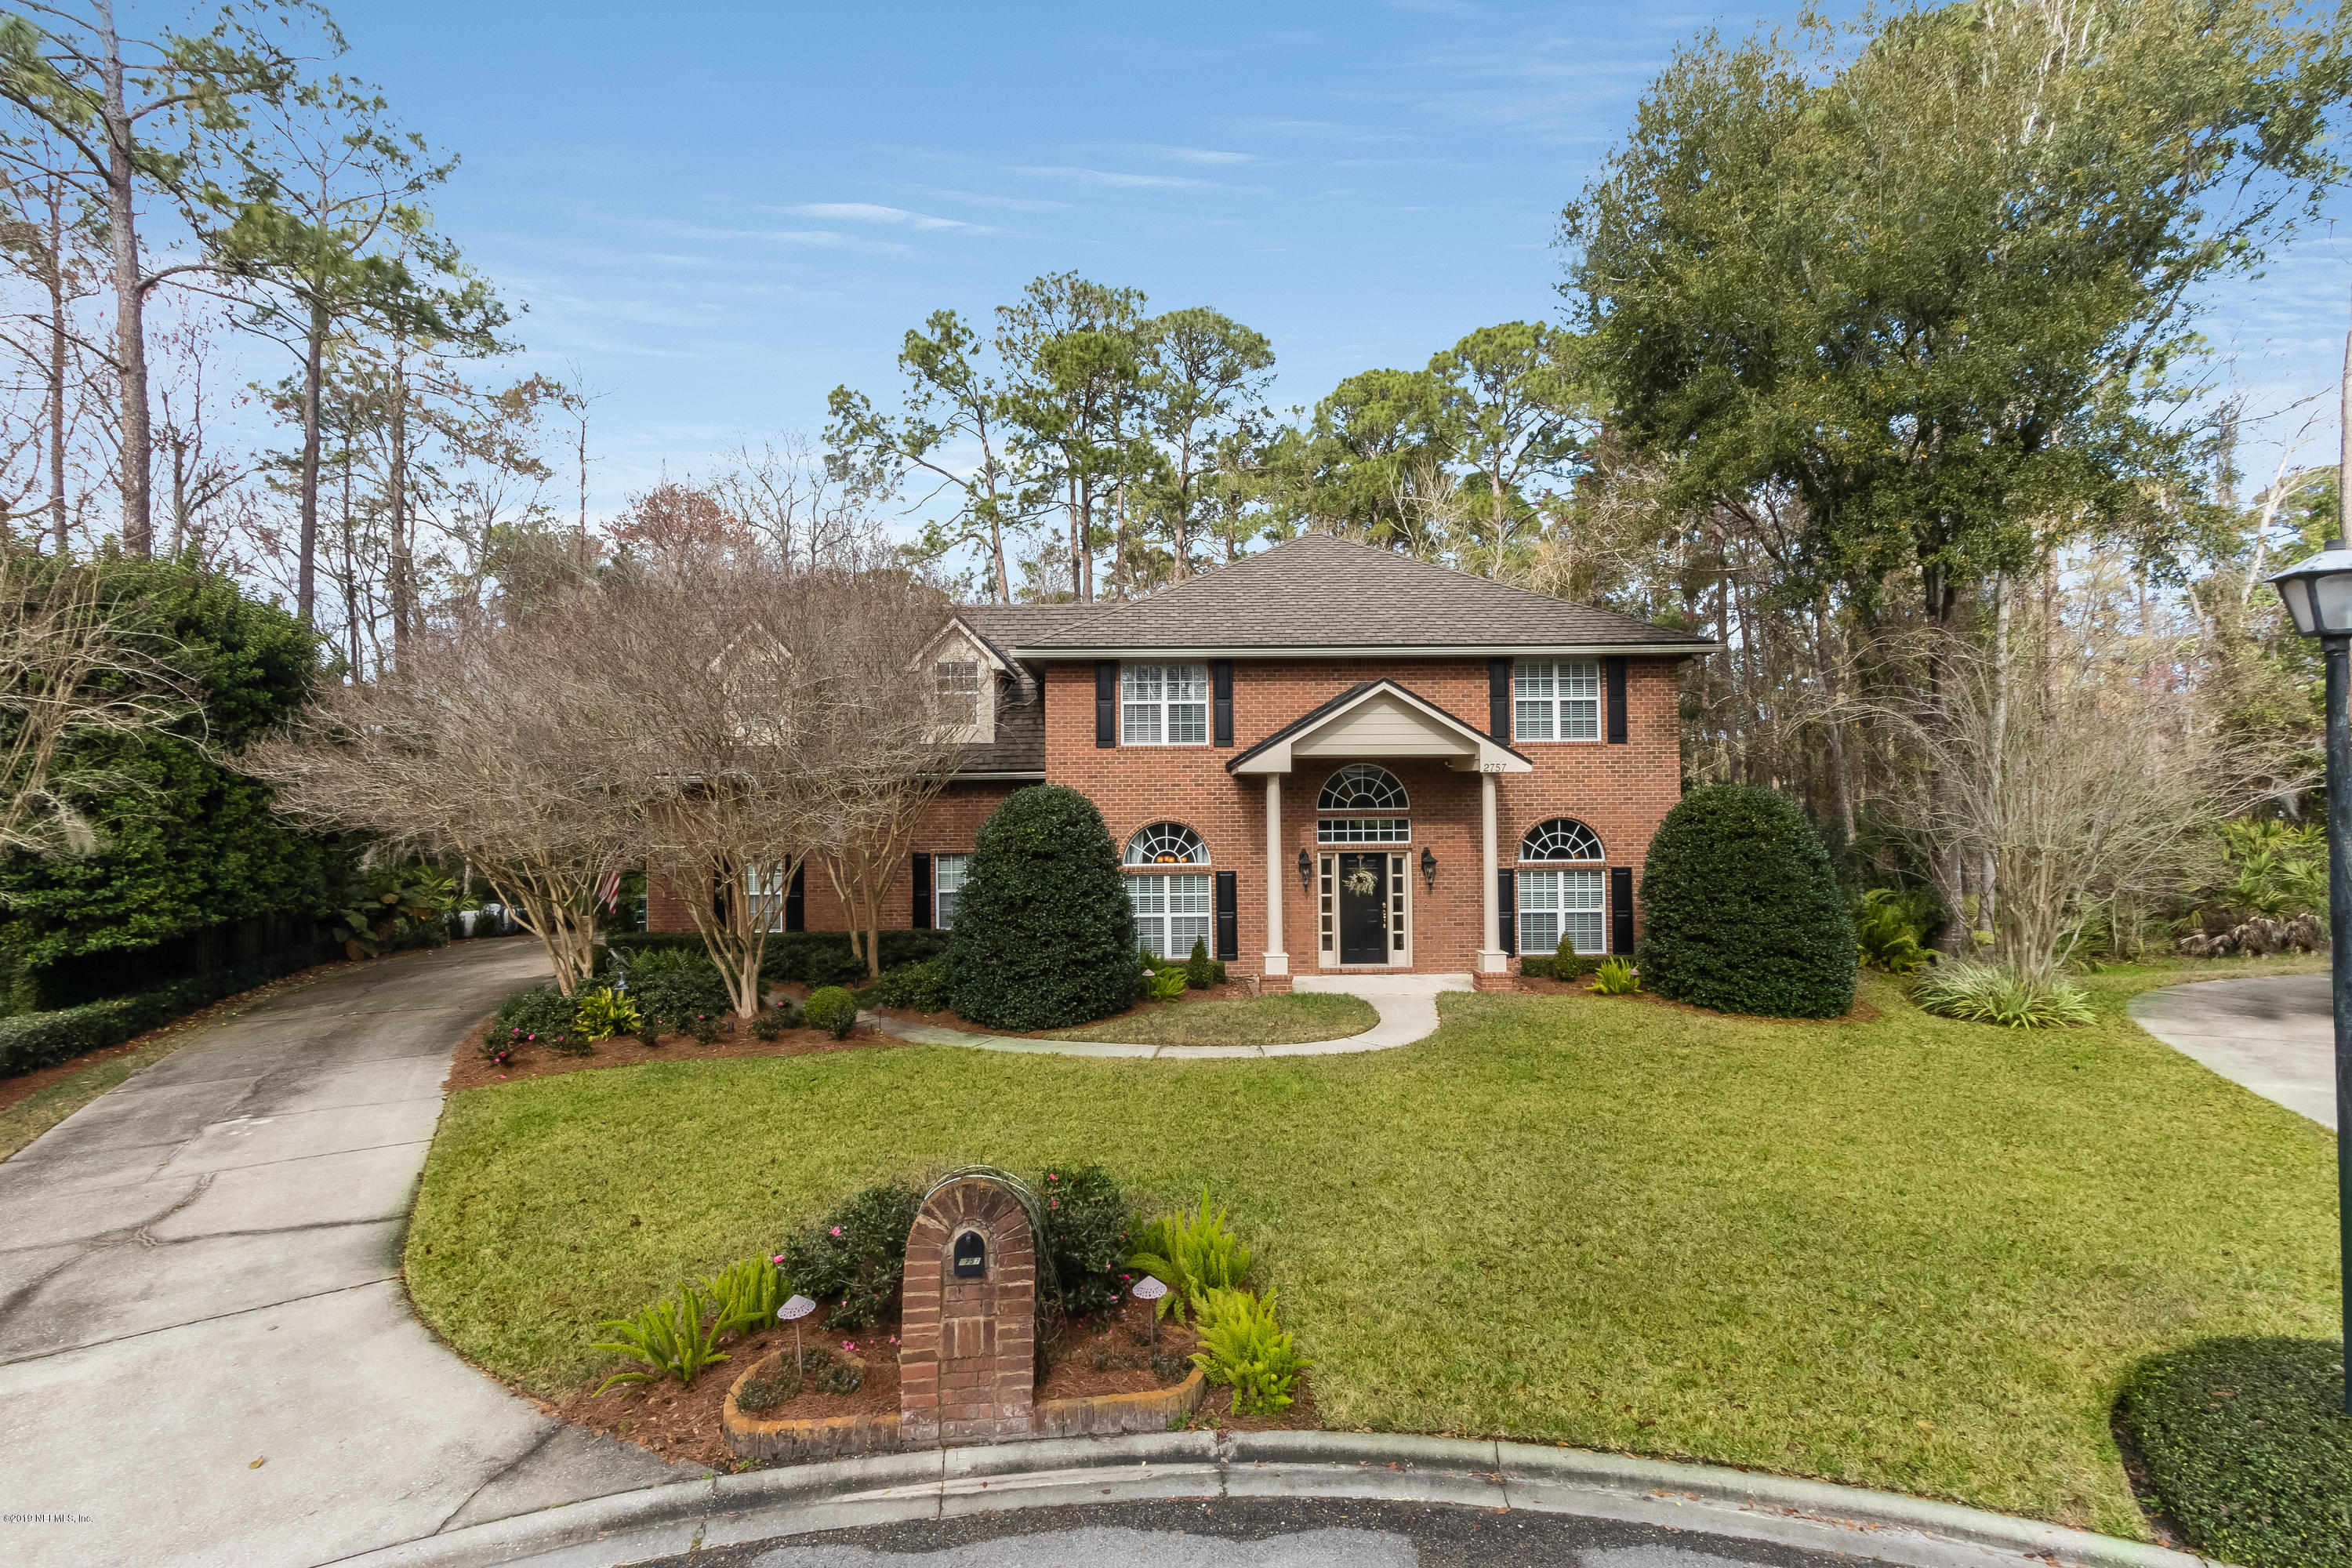 2757 TACITO CREEK, JACKSONVILLE, FLORIDA 32223, 5 Bedrooms Bedrooms, ,3 BathroomsBathrooms,Residential - single family,For sale,TACITO CREEK,979919